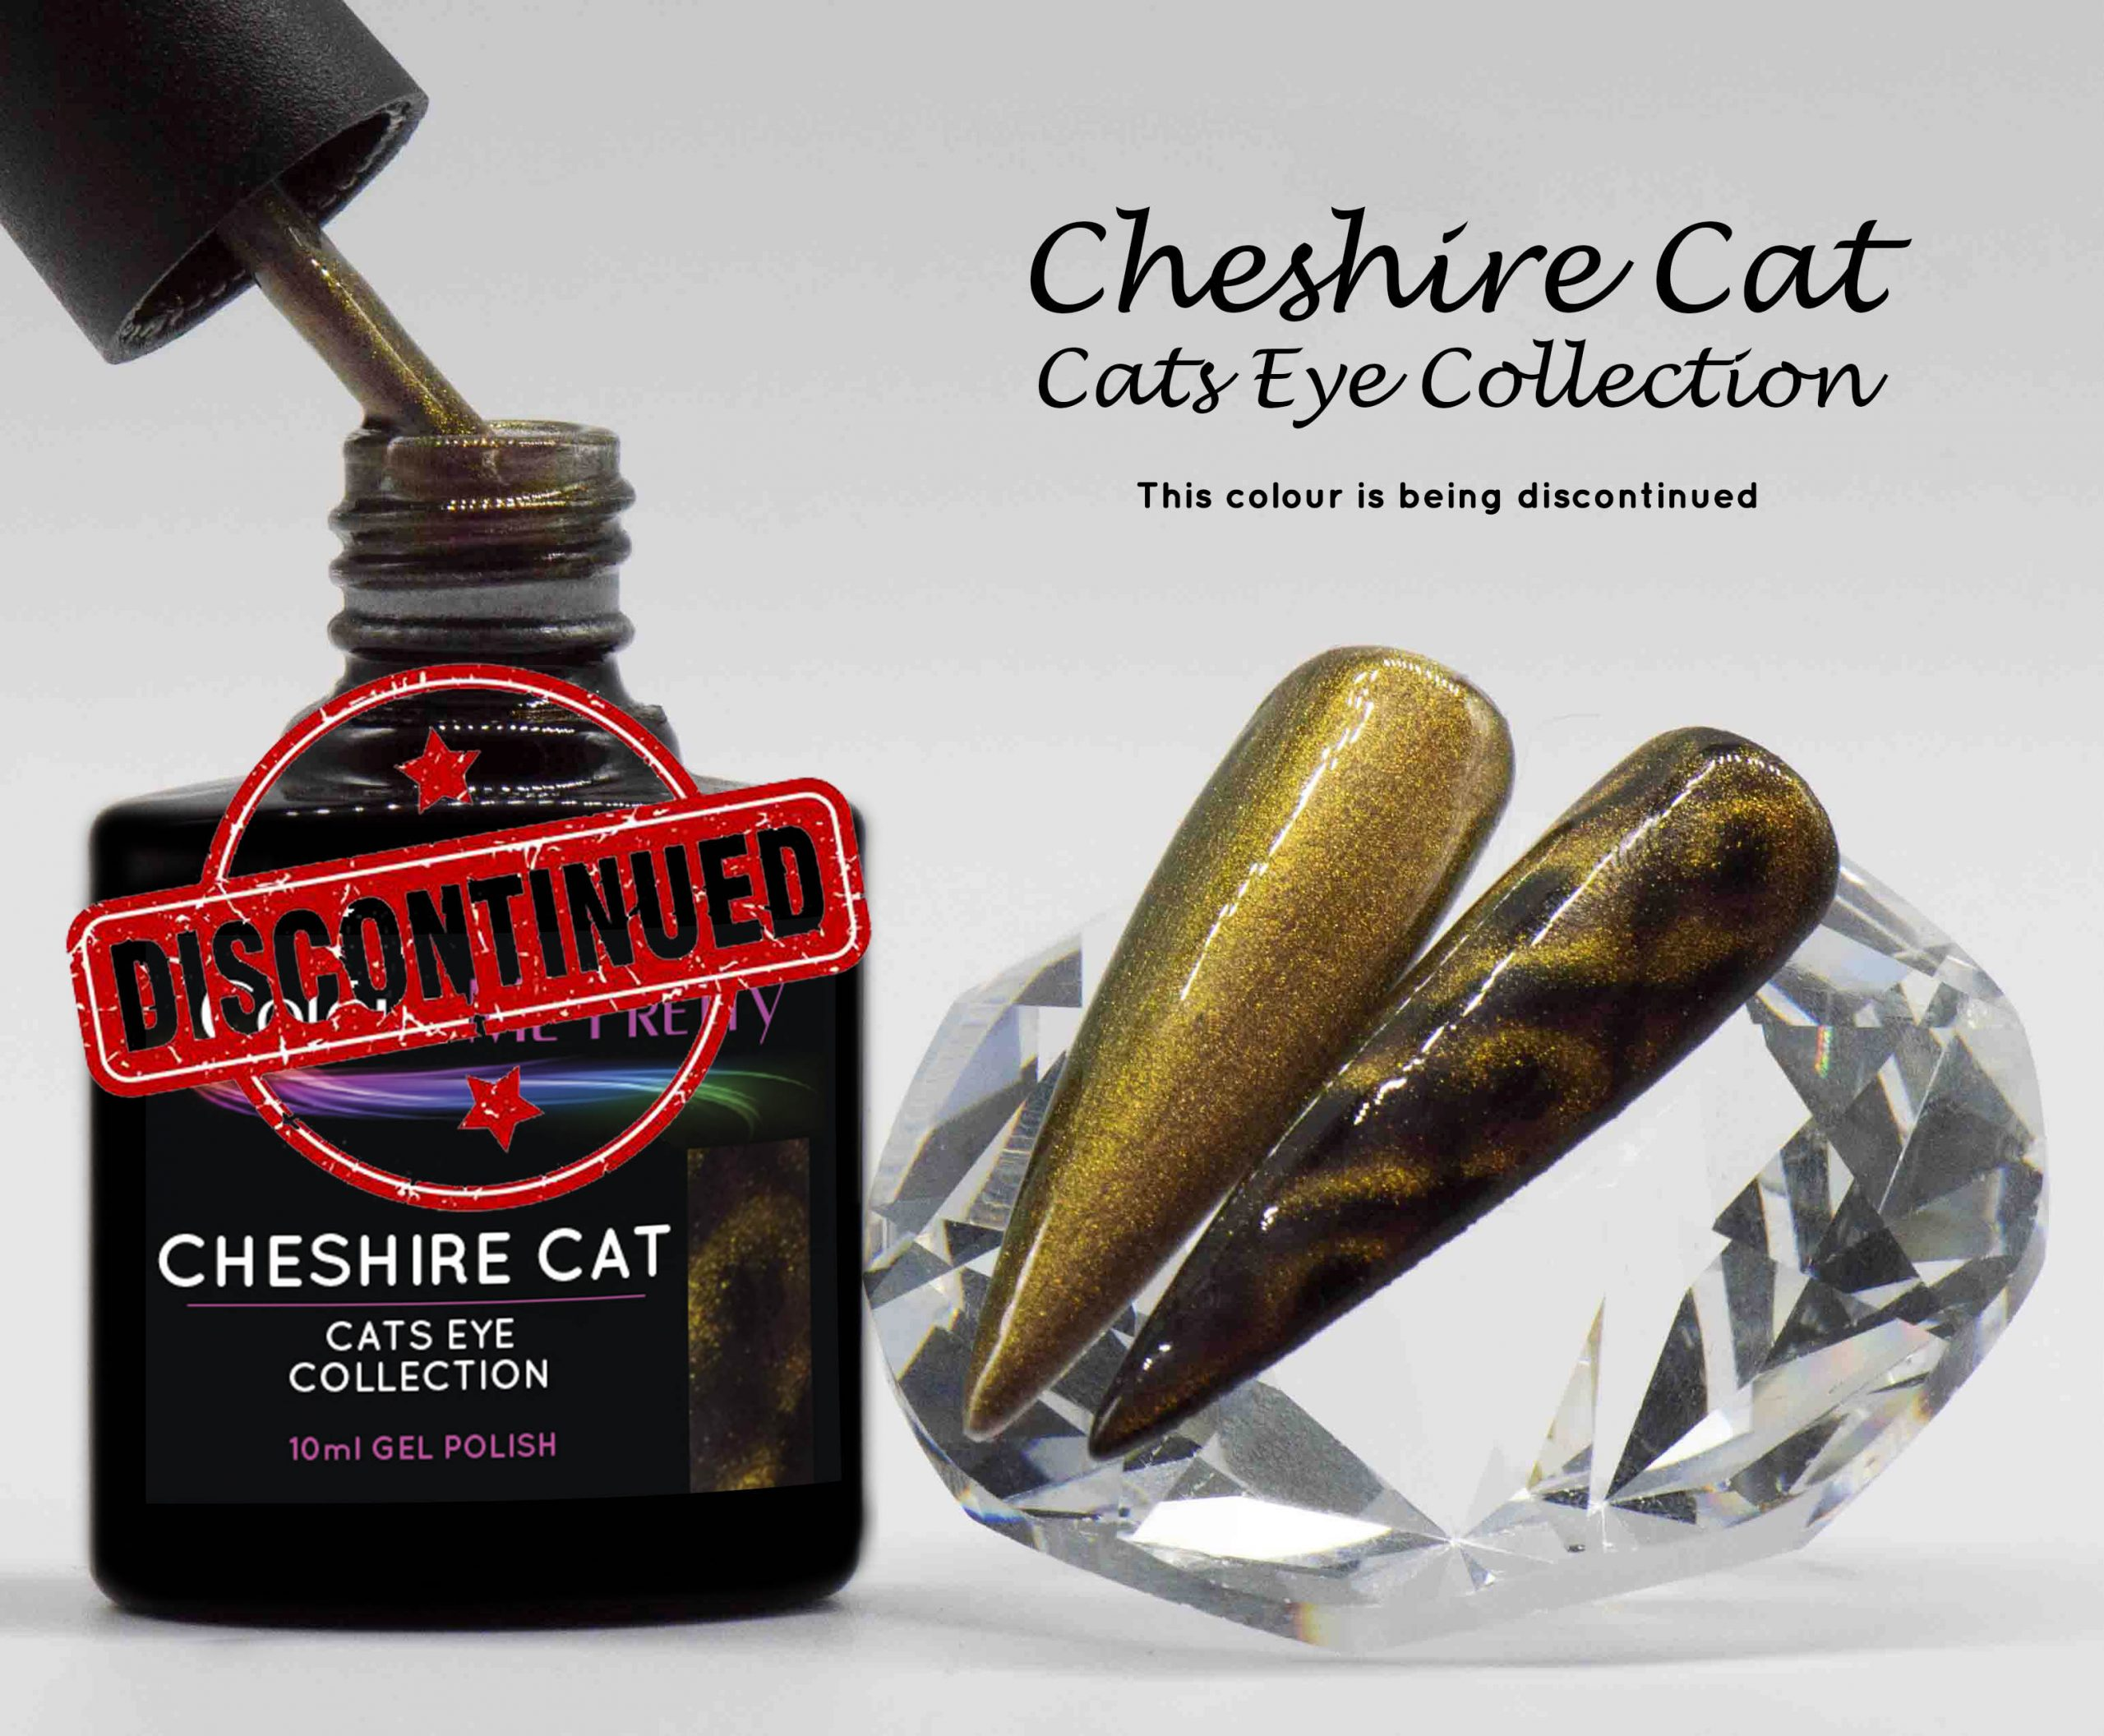 Cats Eye Cheshire Cat Discontinued